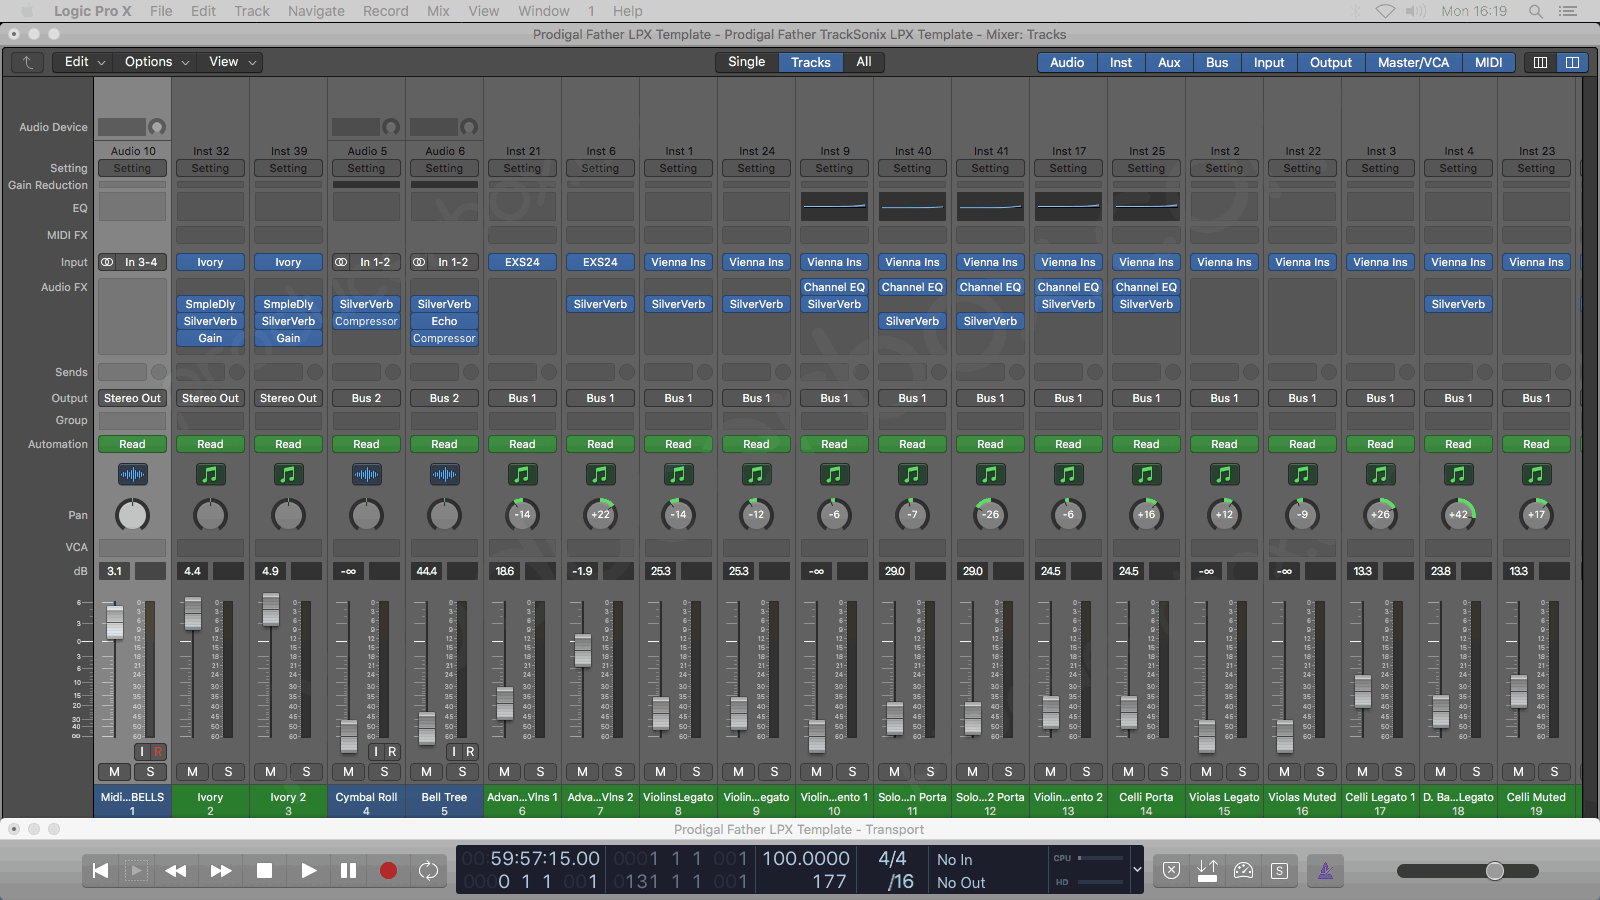 Logic Pro Mixer Preview #1